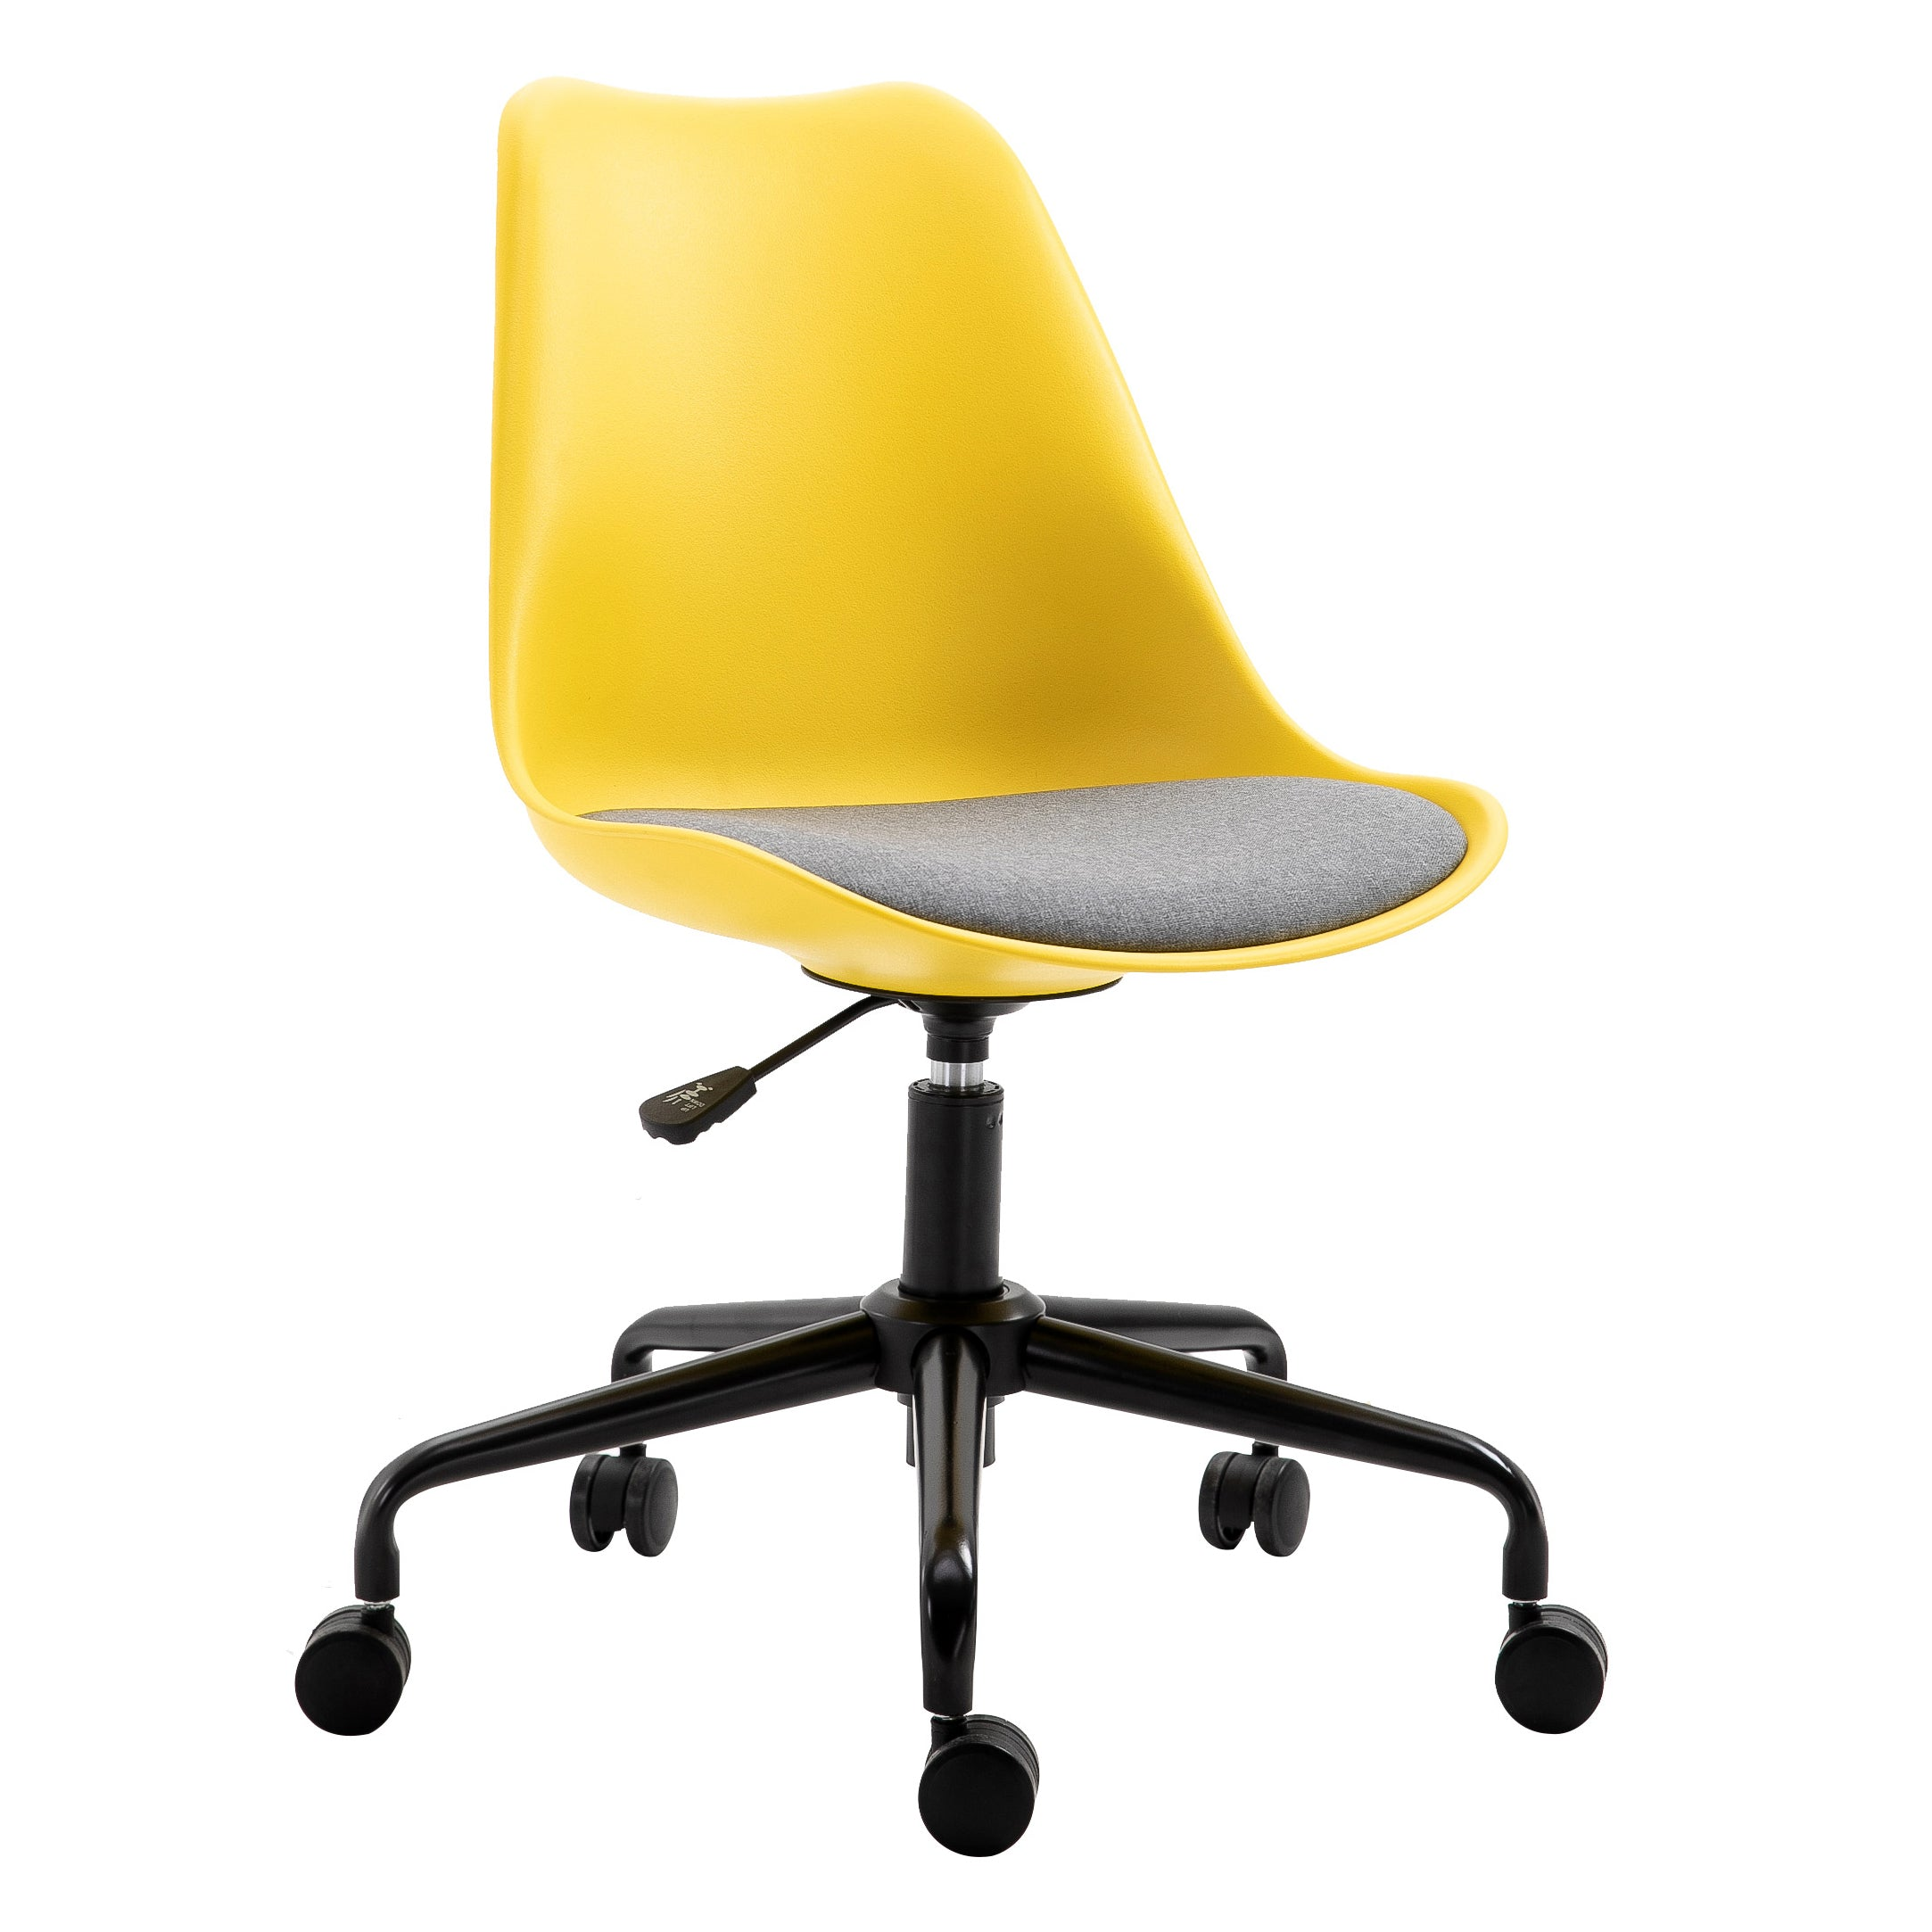 Gerri Swivel Office Chair with Upholstered Seat Yellow